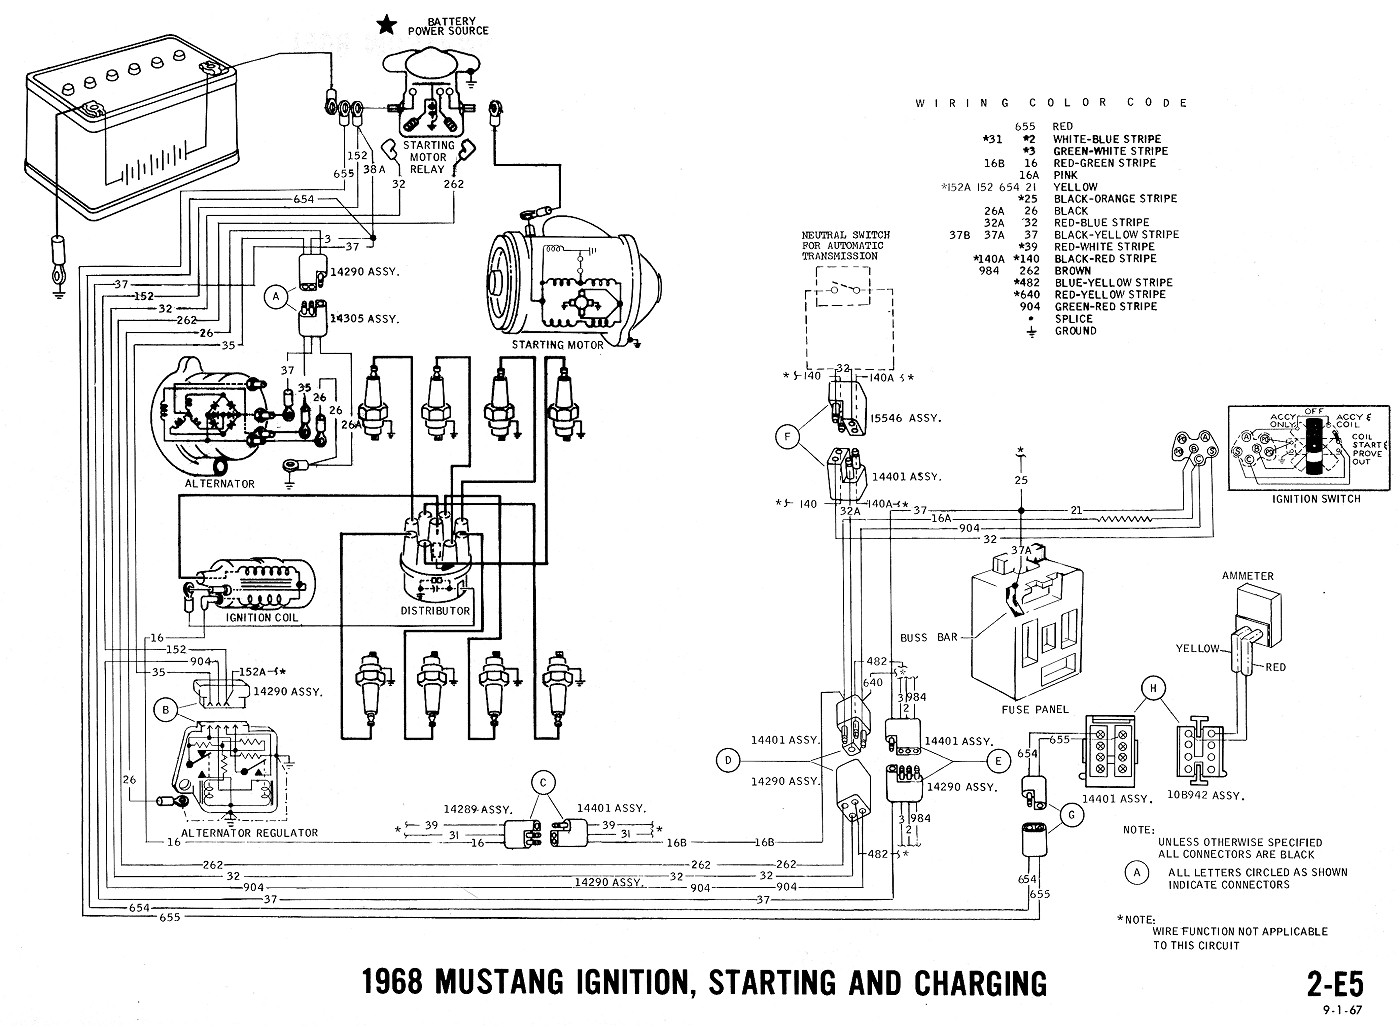 65 Mustang Column Wiring Diagram - Schematic wiring diagramcamelotunchained.it